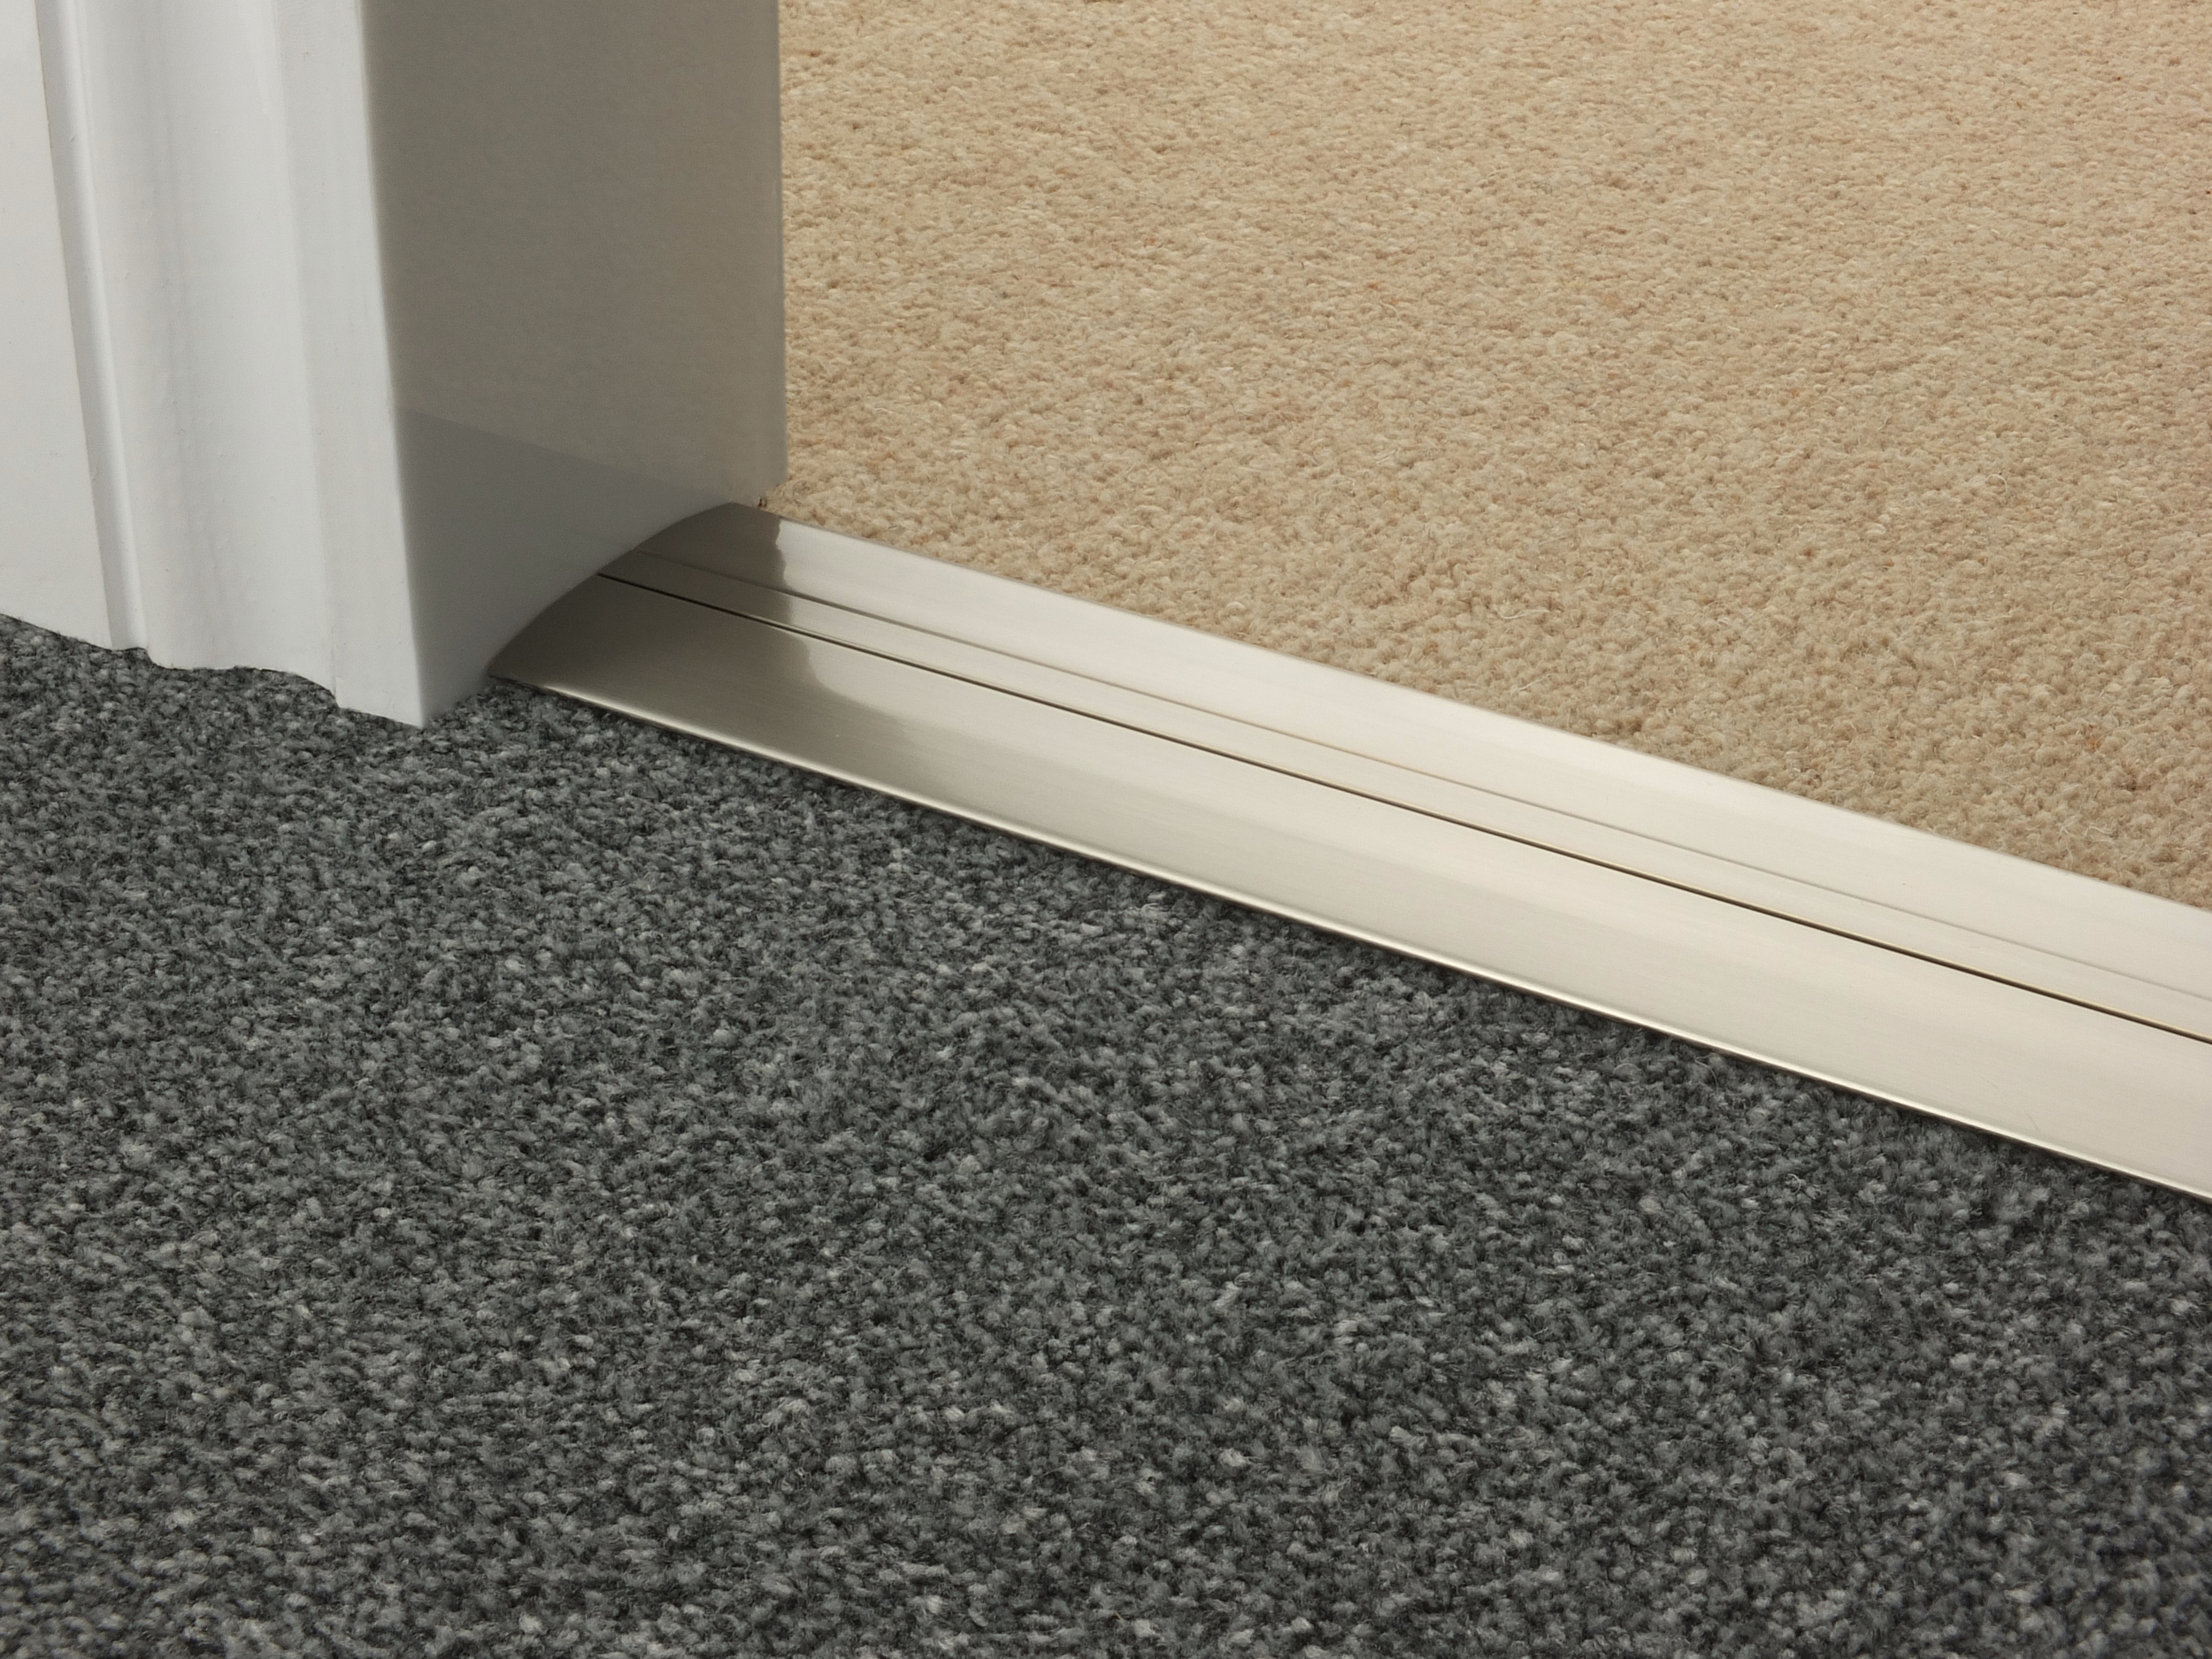 door_bar_satin_nickel_posh55_carpet_carpet.jpg